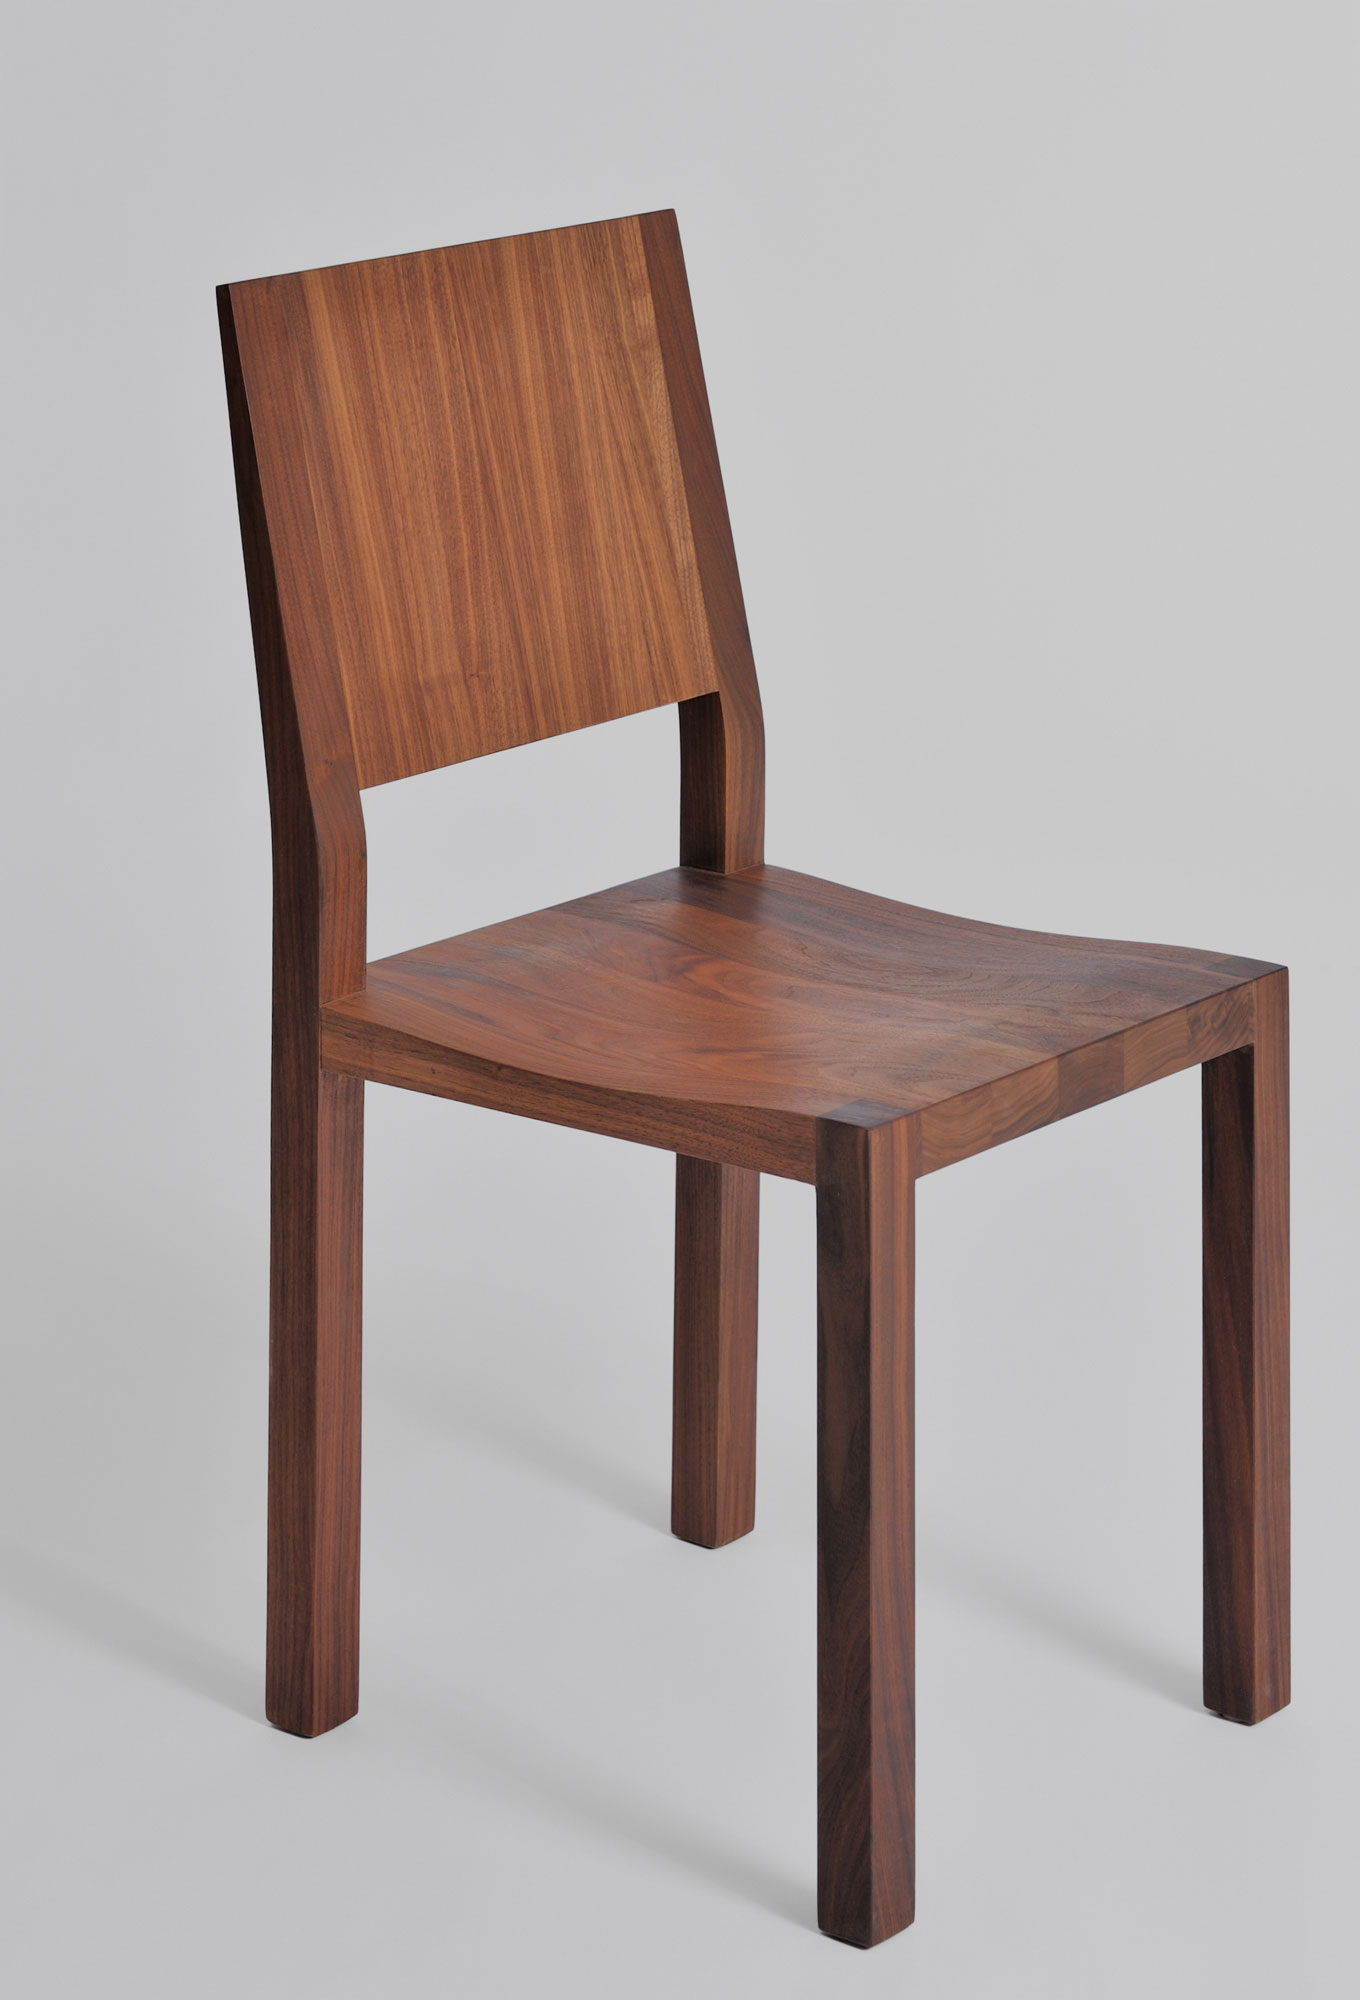 Solid Wood Chair TAU 1 custom made in solid wood by vitamin design